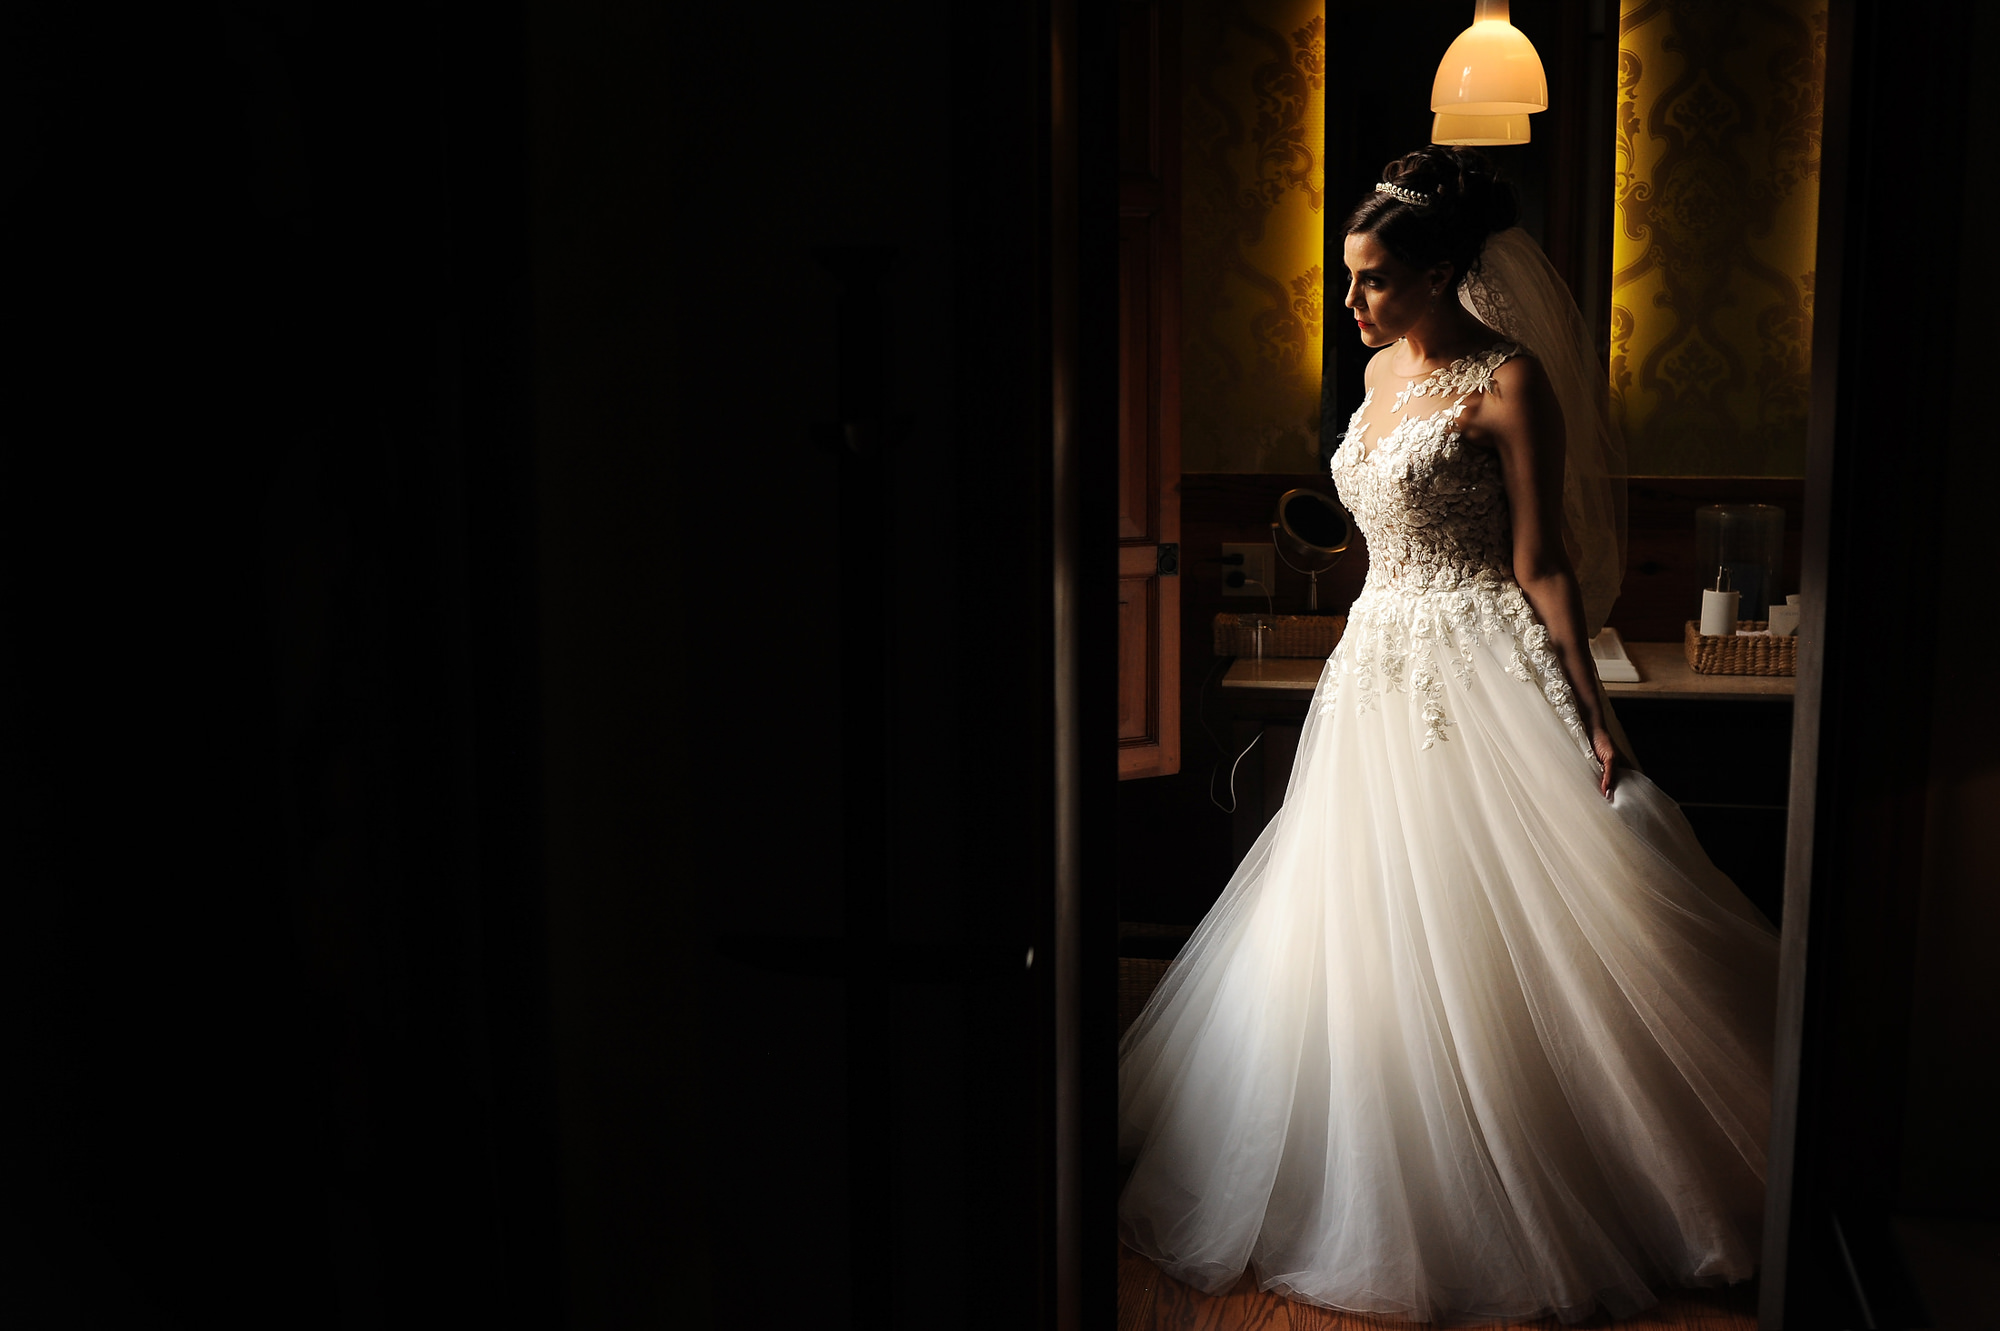 Bride with lace bodice and A-line chiffon skirt  - Daniel Aguilar Photographer